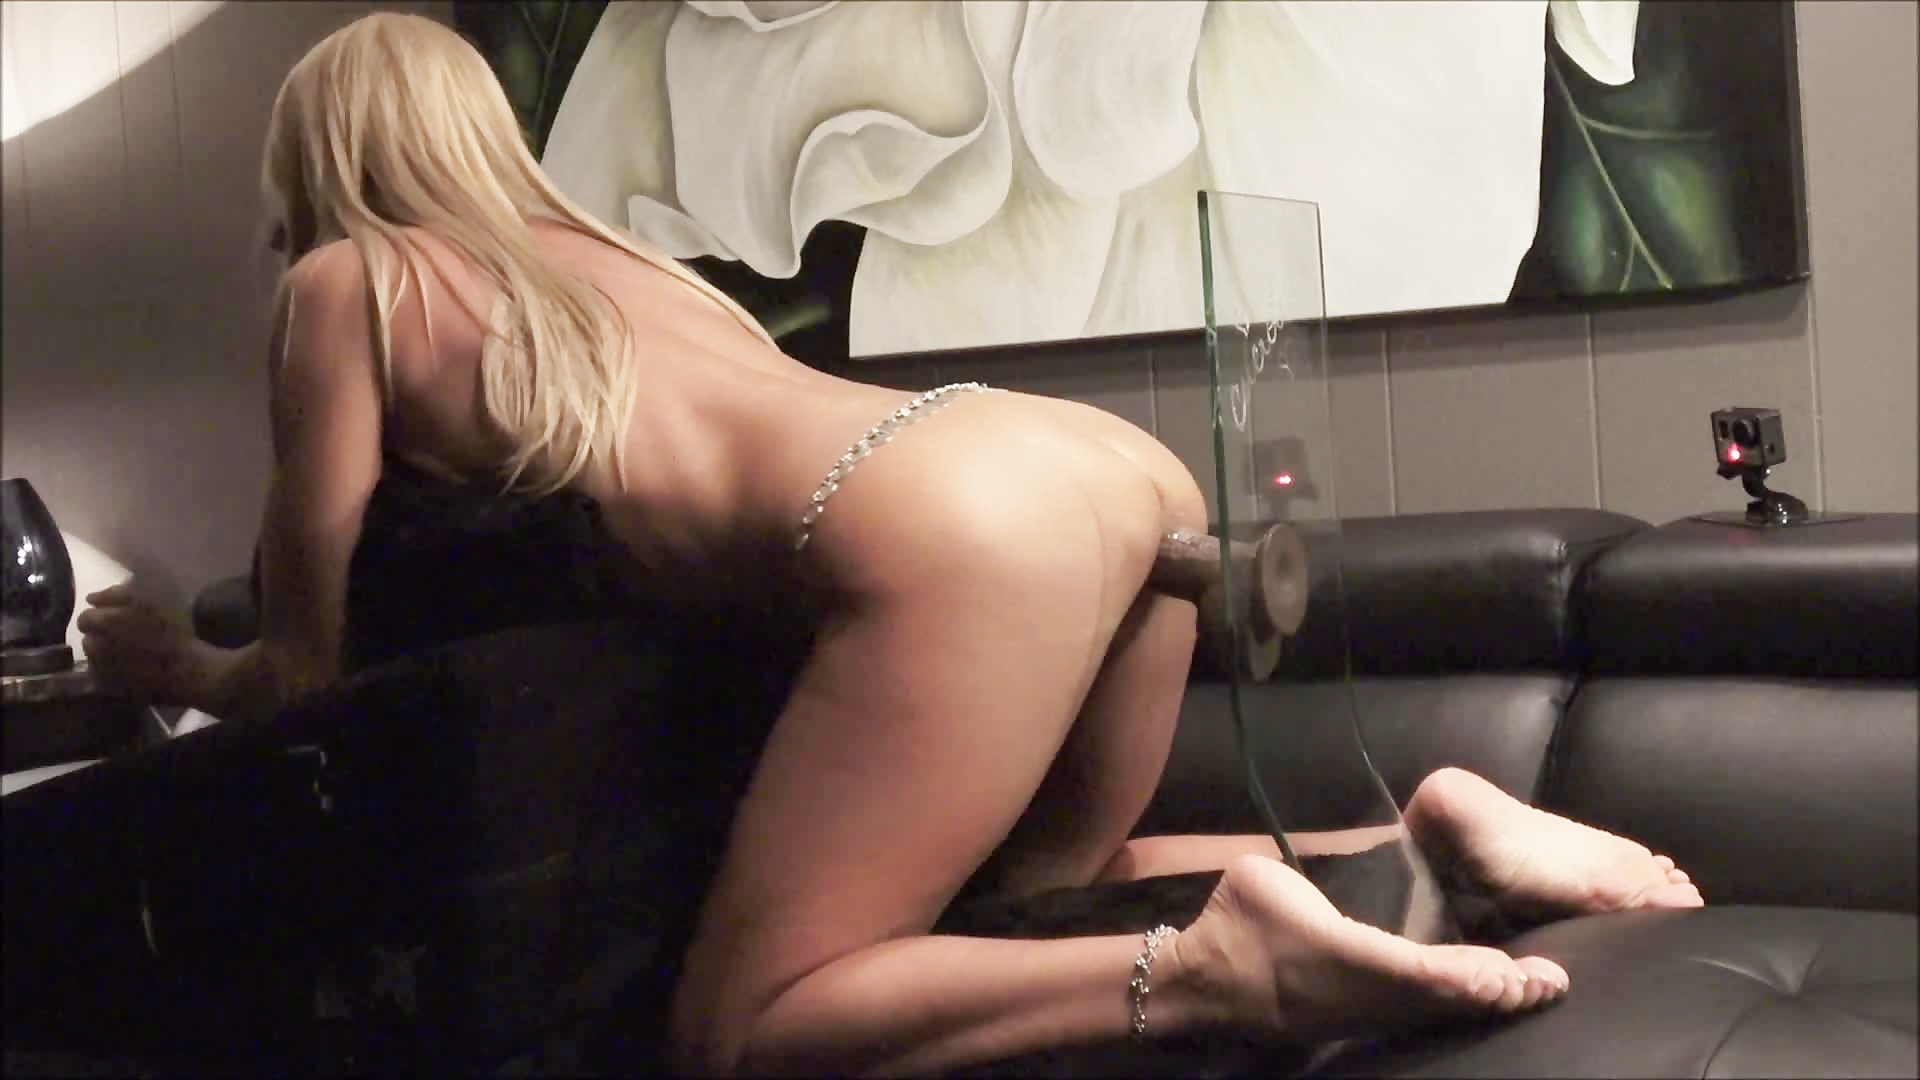 Hot Tanned Amateur Wife Masturbates With Large Dildo Great -7046